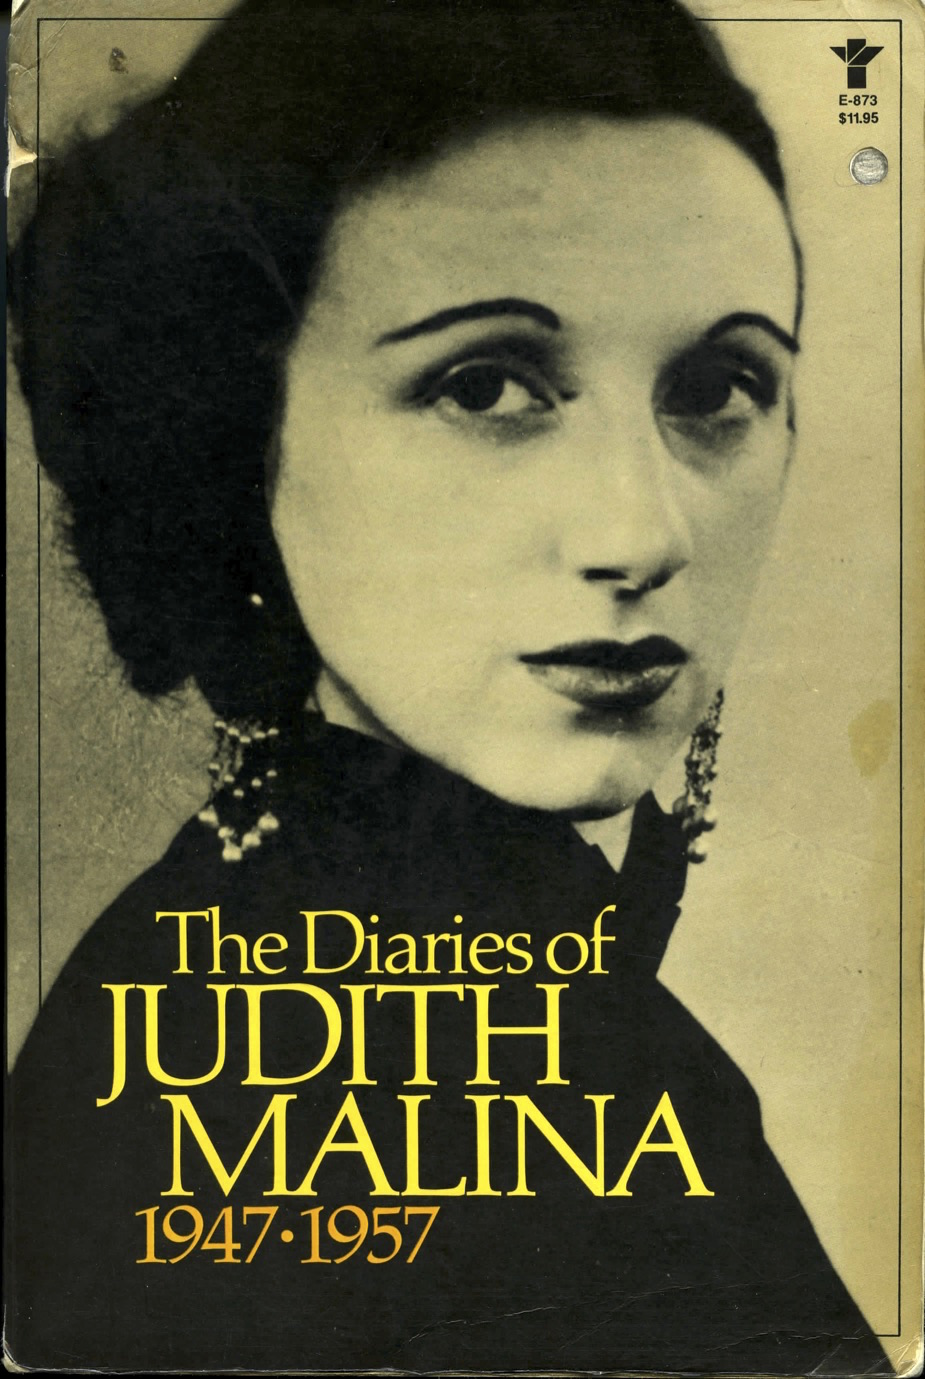 judith malina movies